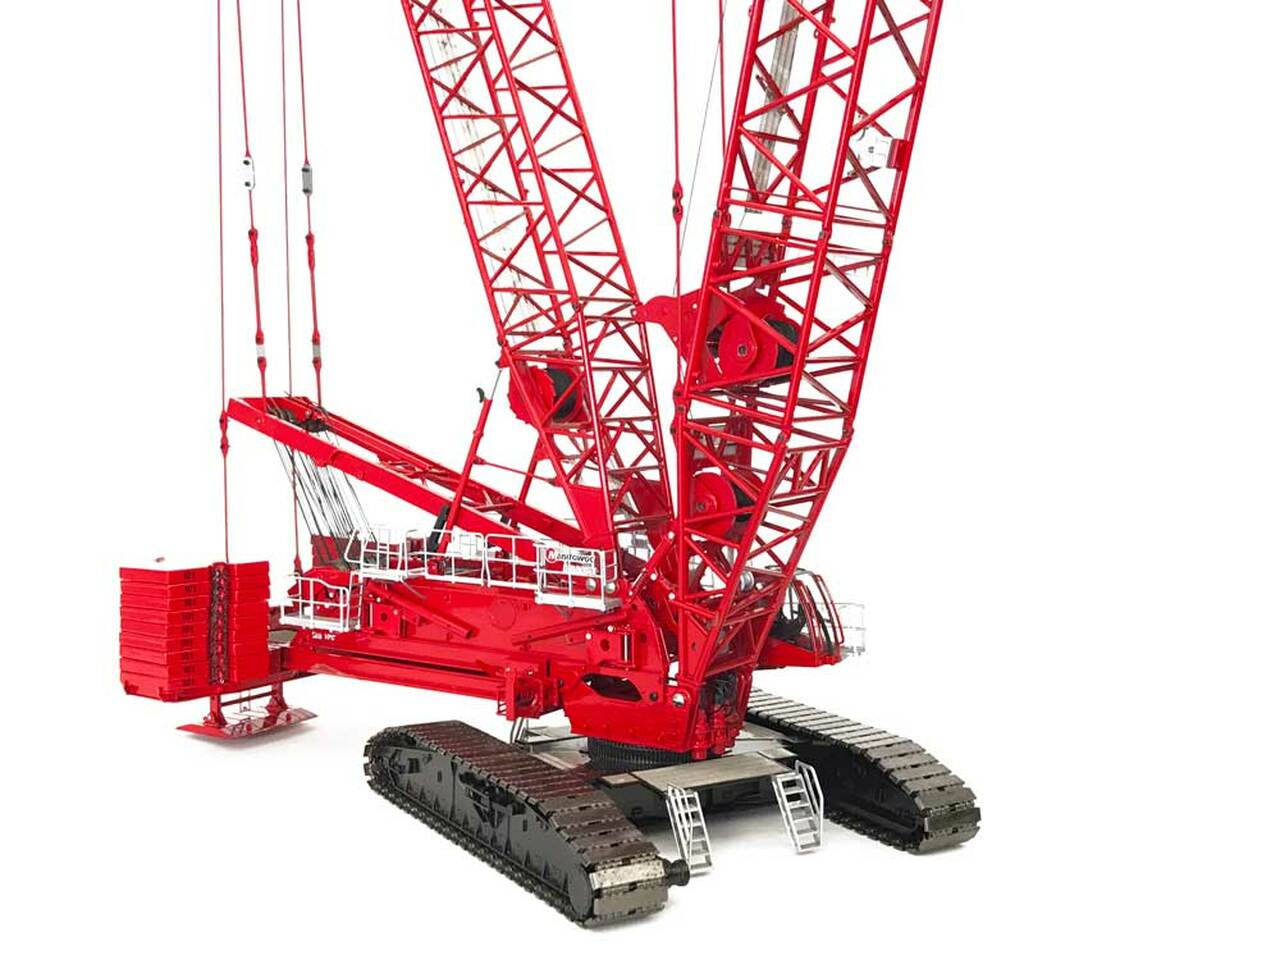 This Pre-Production Metal Sample Manitowoc MLC650 is one of the most configurable cranes in the market.